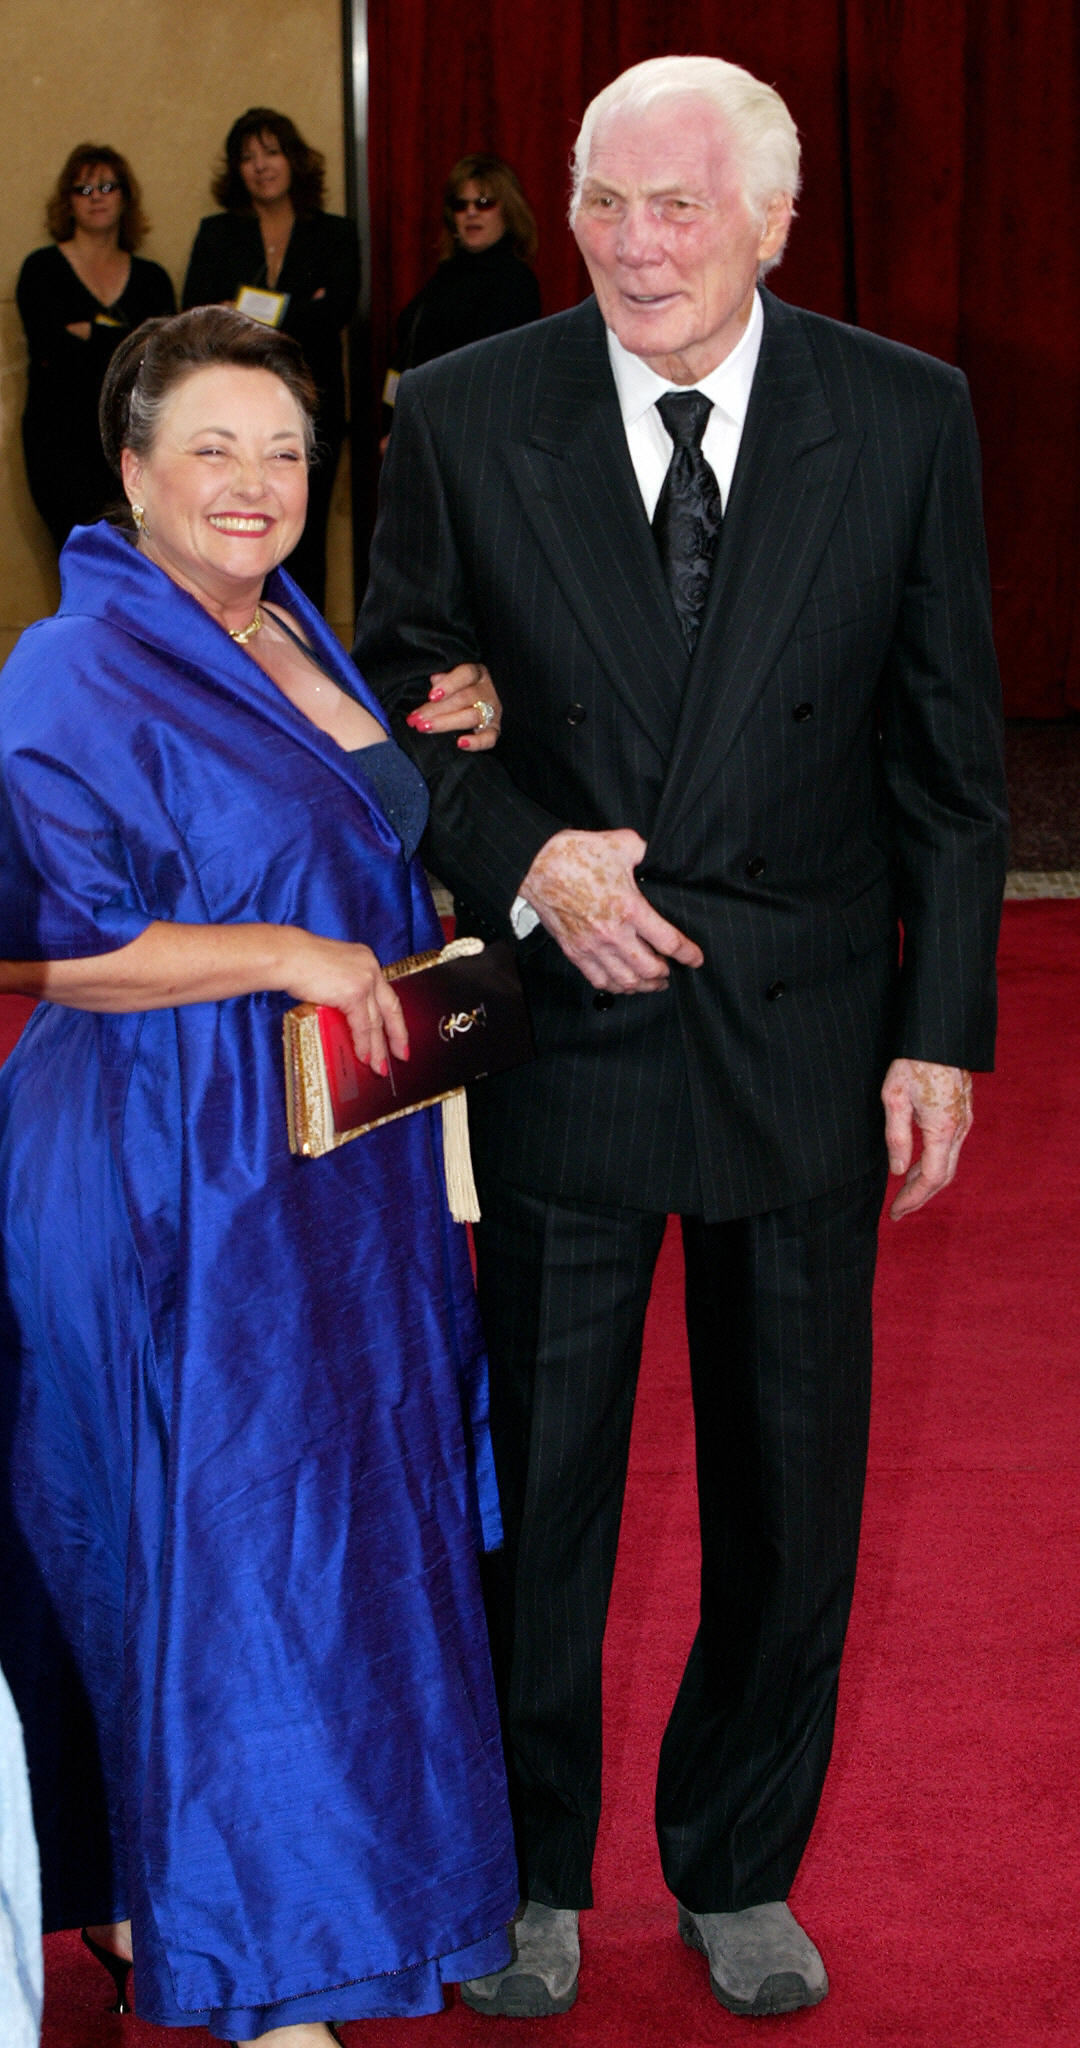 Jack Palance arrives with his wife Elaine